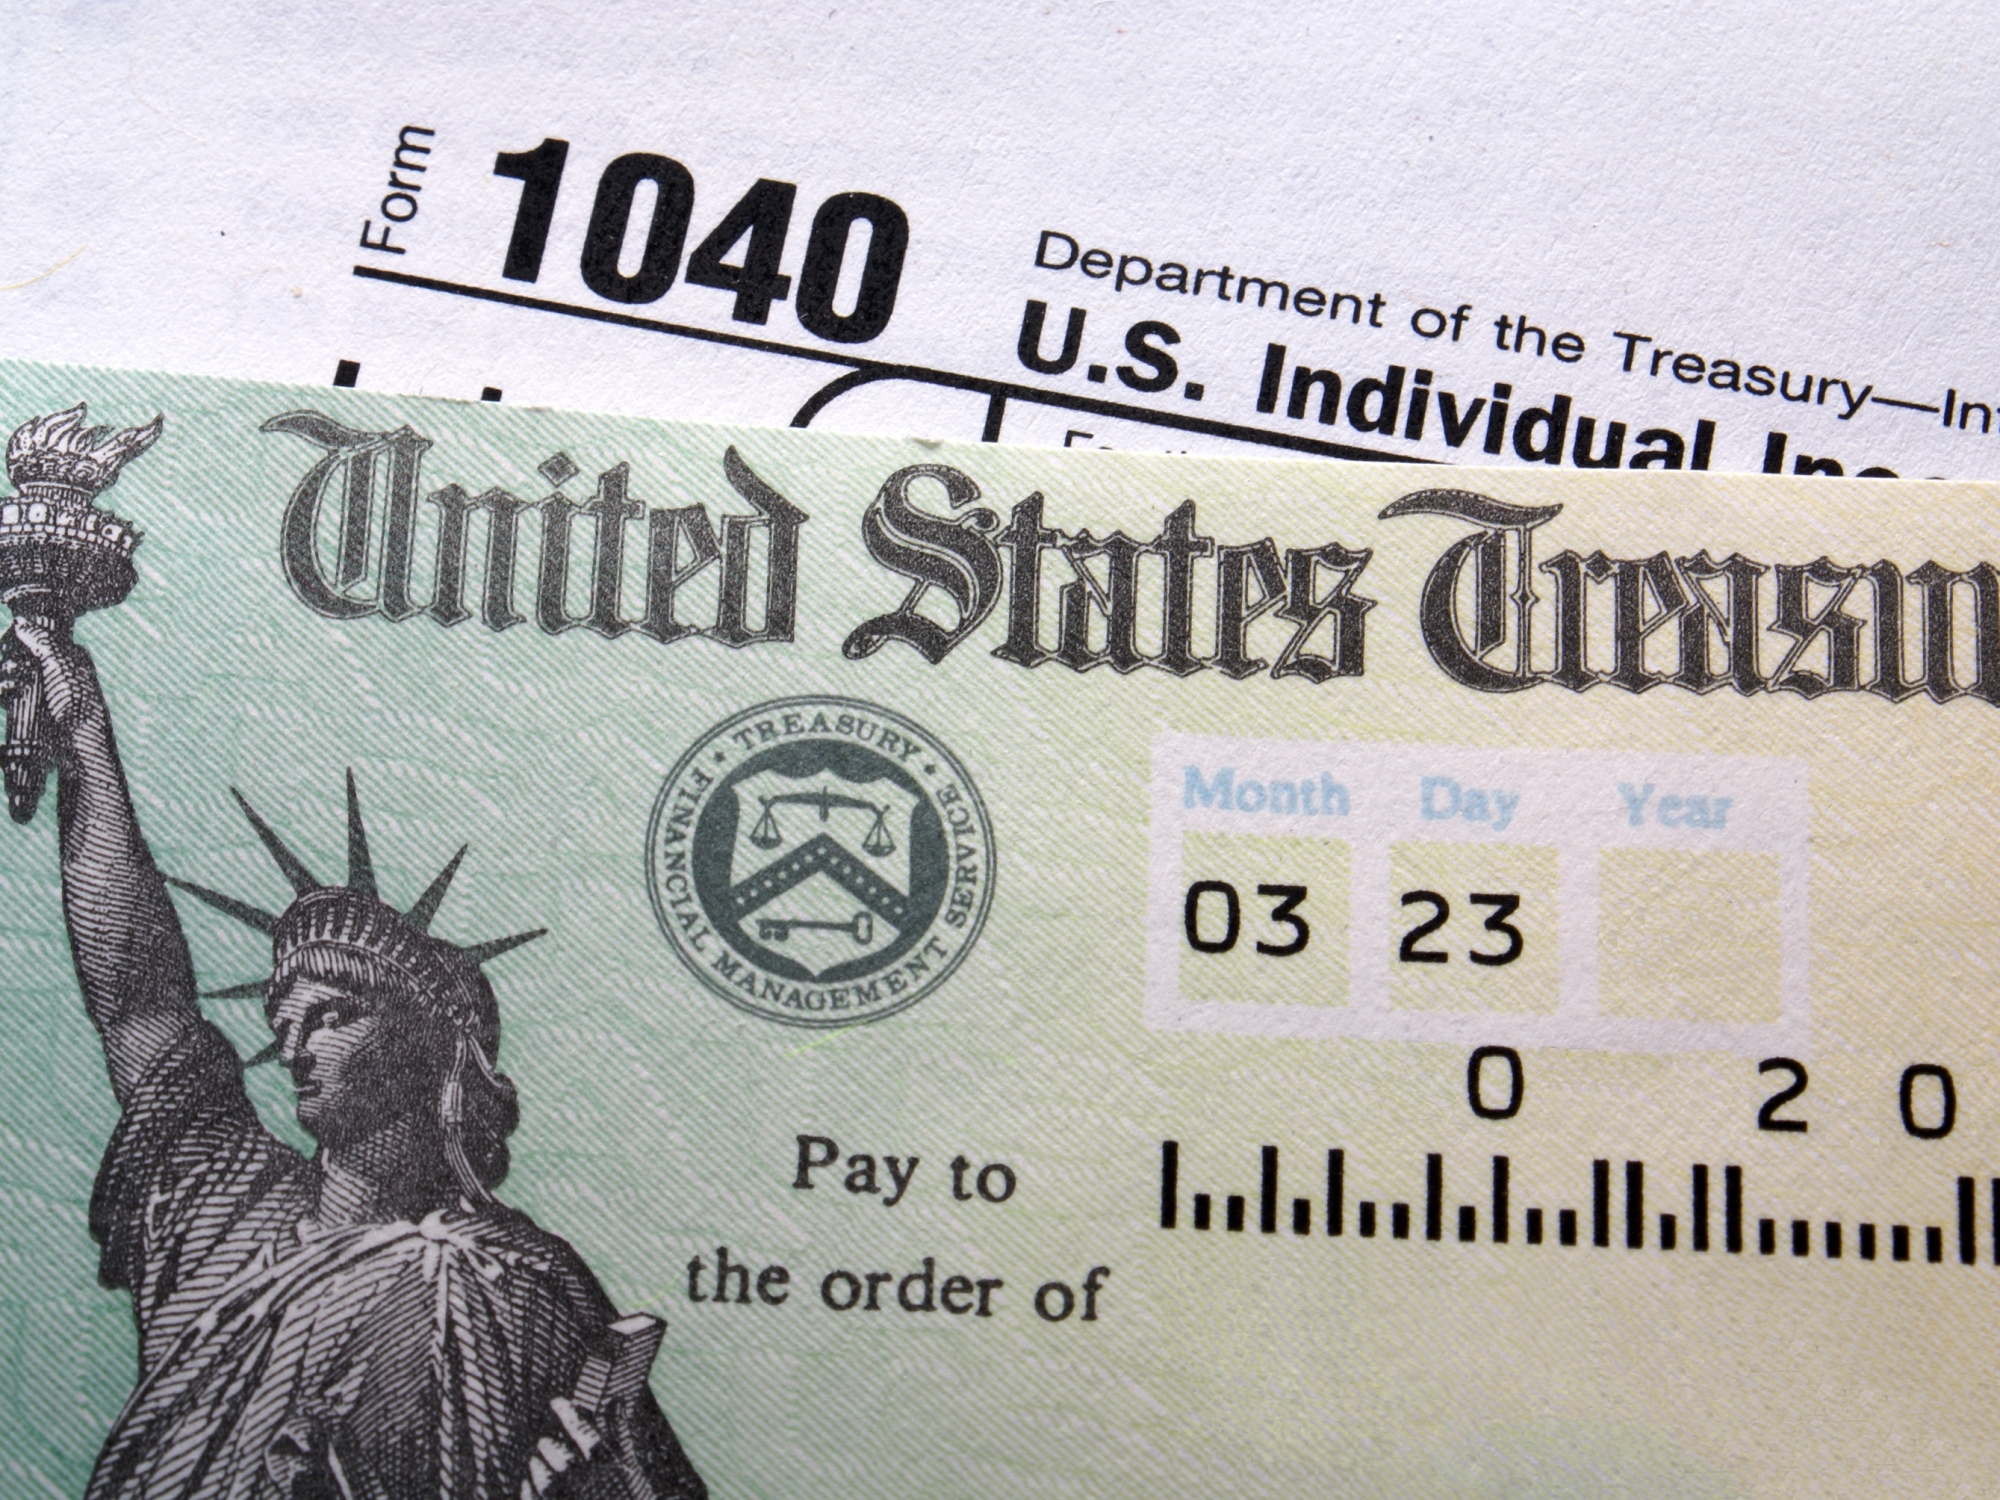 90-percent-of-Federal-Tax-Returns-Filed-Online